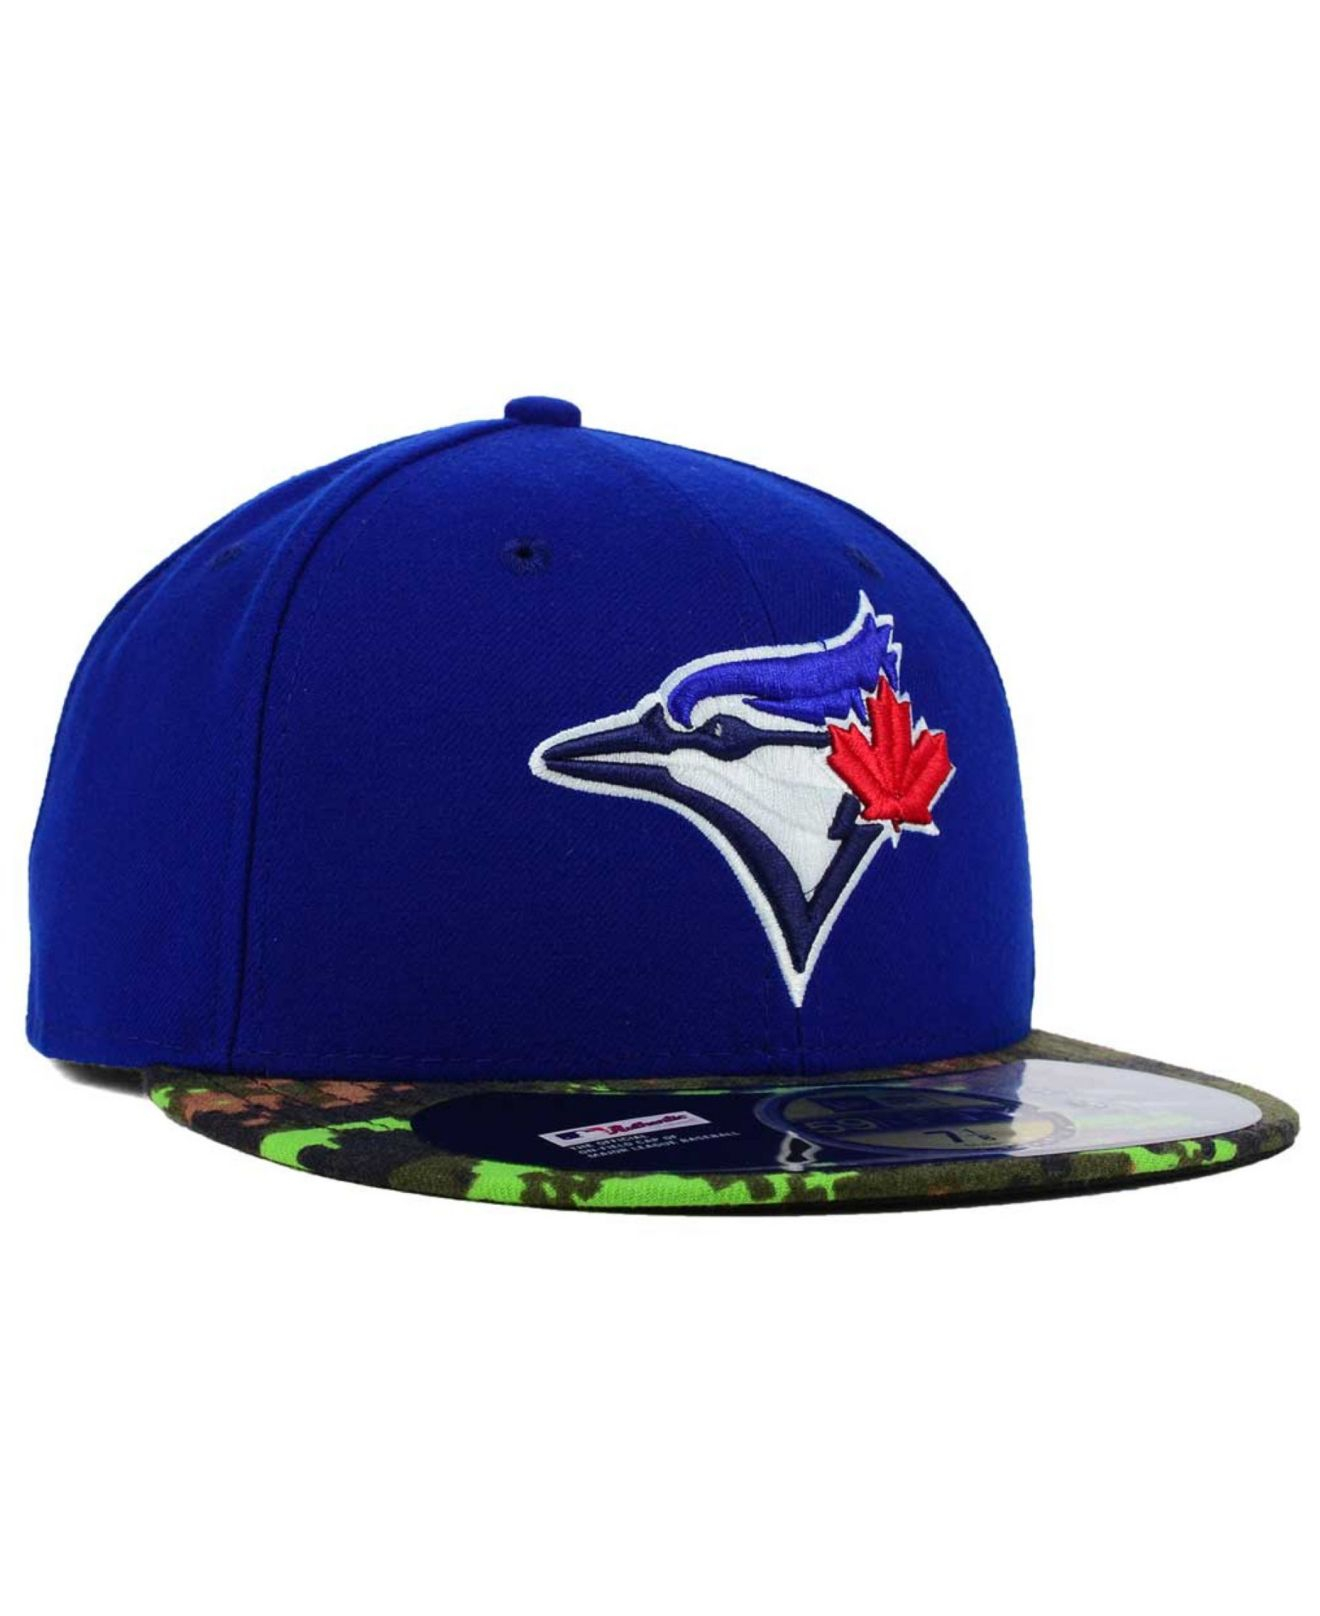 los angeles b1939 ddb4c KTZ Toronto Blue Jays Memorial Day Stars And Stripes 59fifty Cap in ...